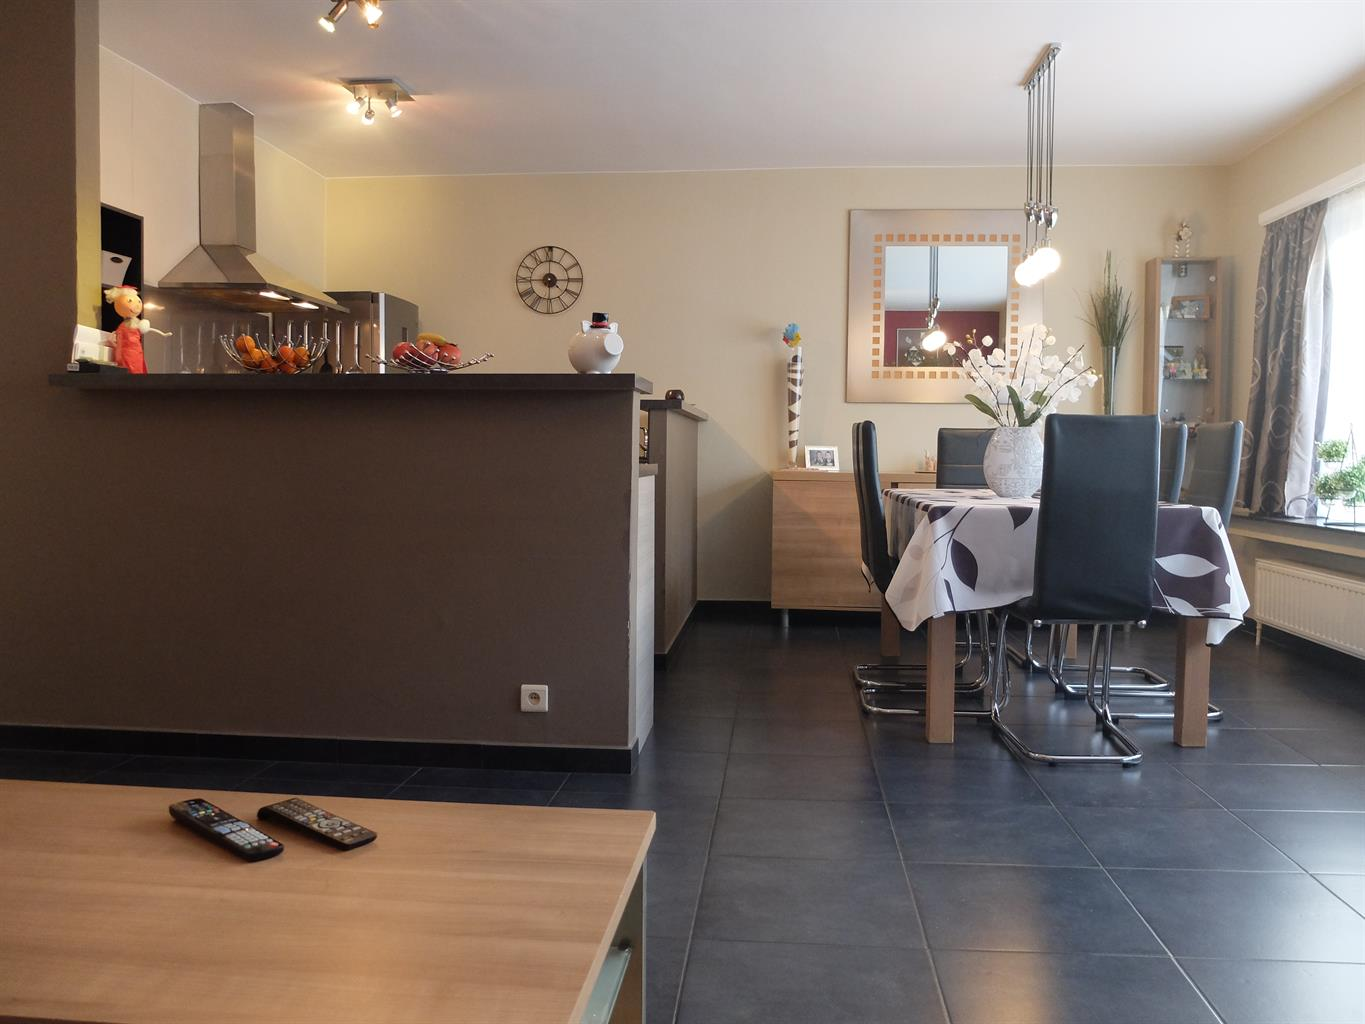 Ground floor with garden - Dilbeek - #3955790-4